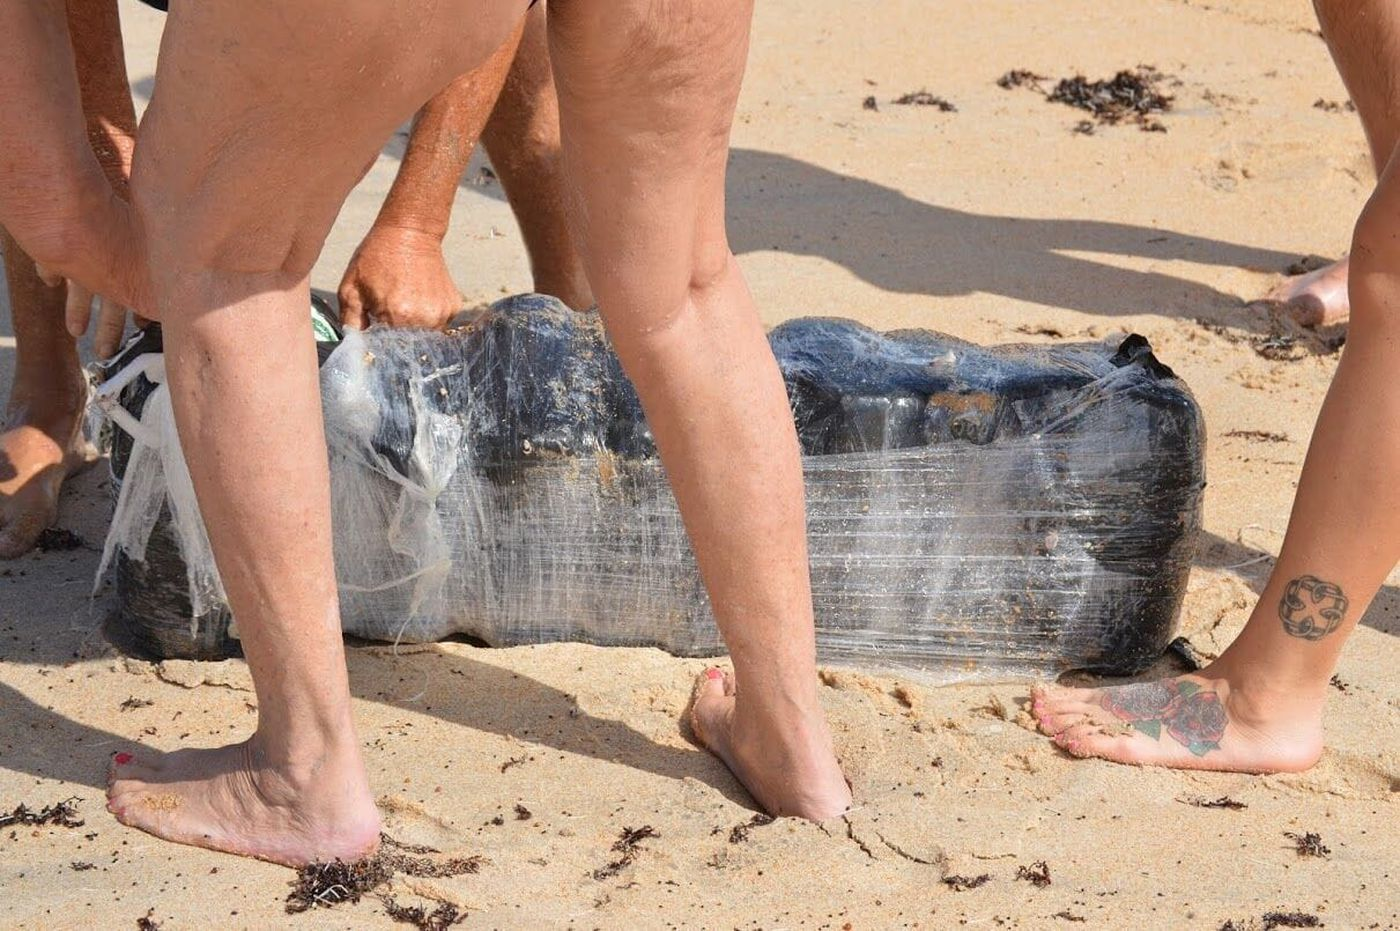 Weed washes up on Florida beaches, but don't fight over it